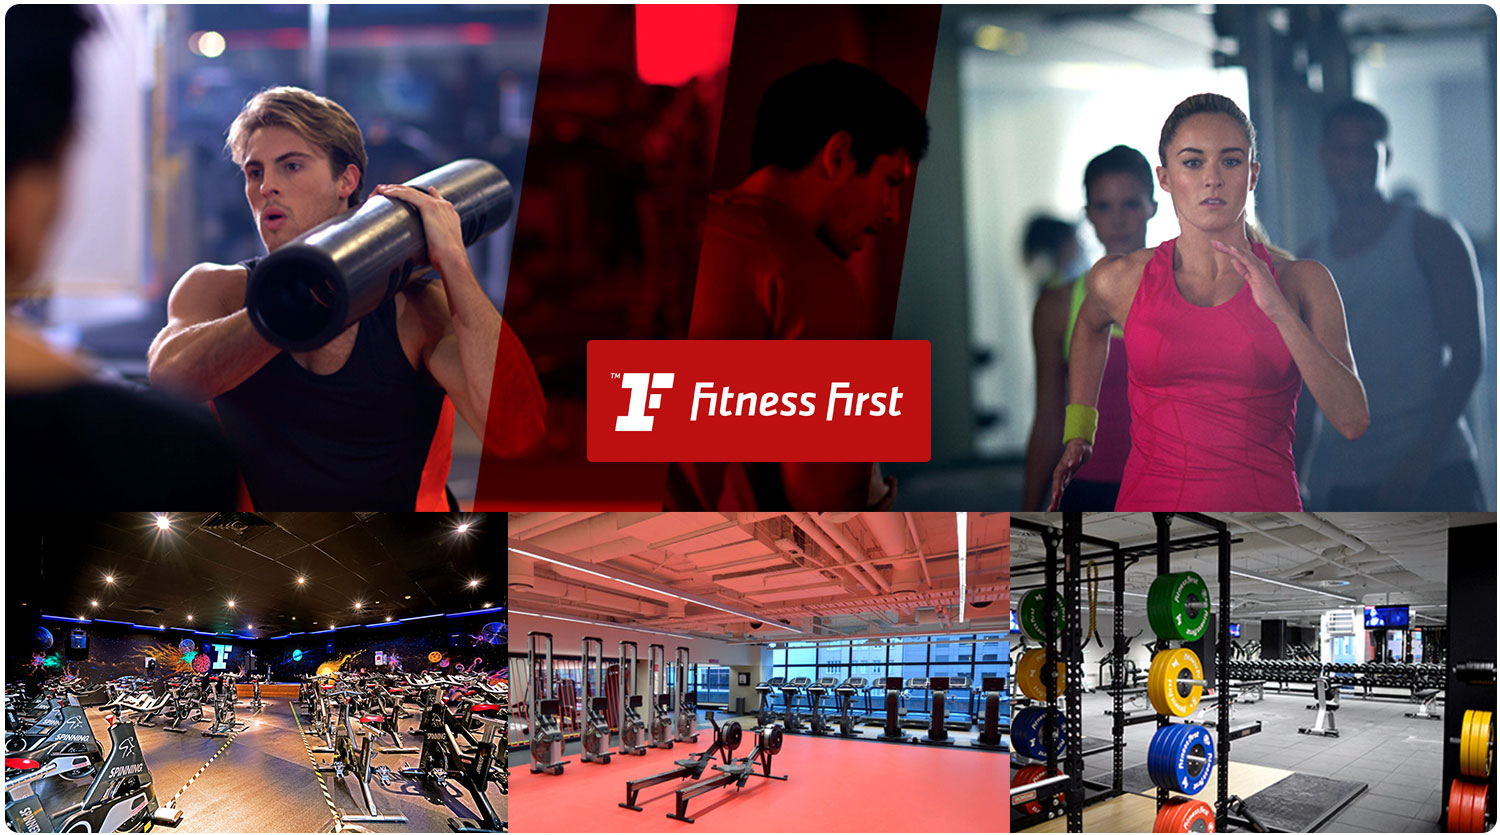 Start your Fitness Journey with Fitness First with only $9.95 for 1 week at Fitness First Cronulla. Experience our first class gym and freestyle classes inc. Yoga, Pilates, Barre, Zumba, Les Mills and more. Take the first step with Fitness First Cronulla.